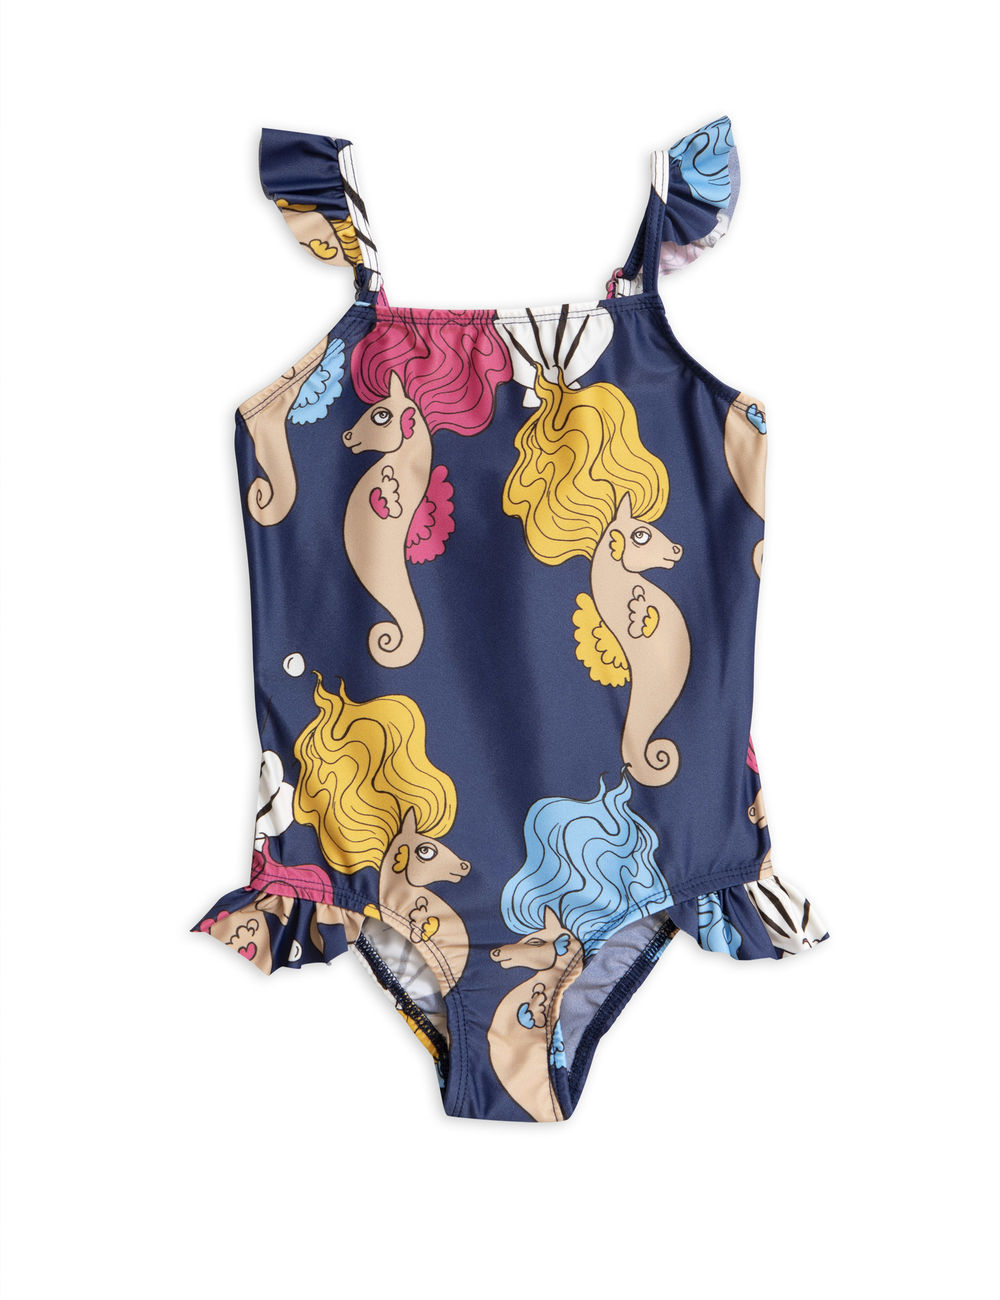 MINI RODINI SEAHORSE WING SWIMSUIT, NAVY